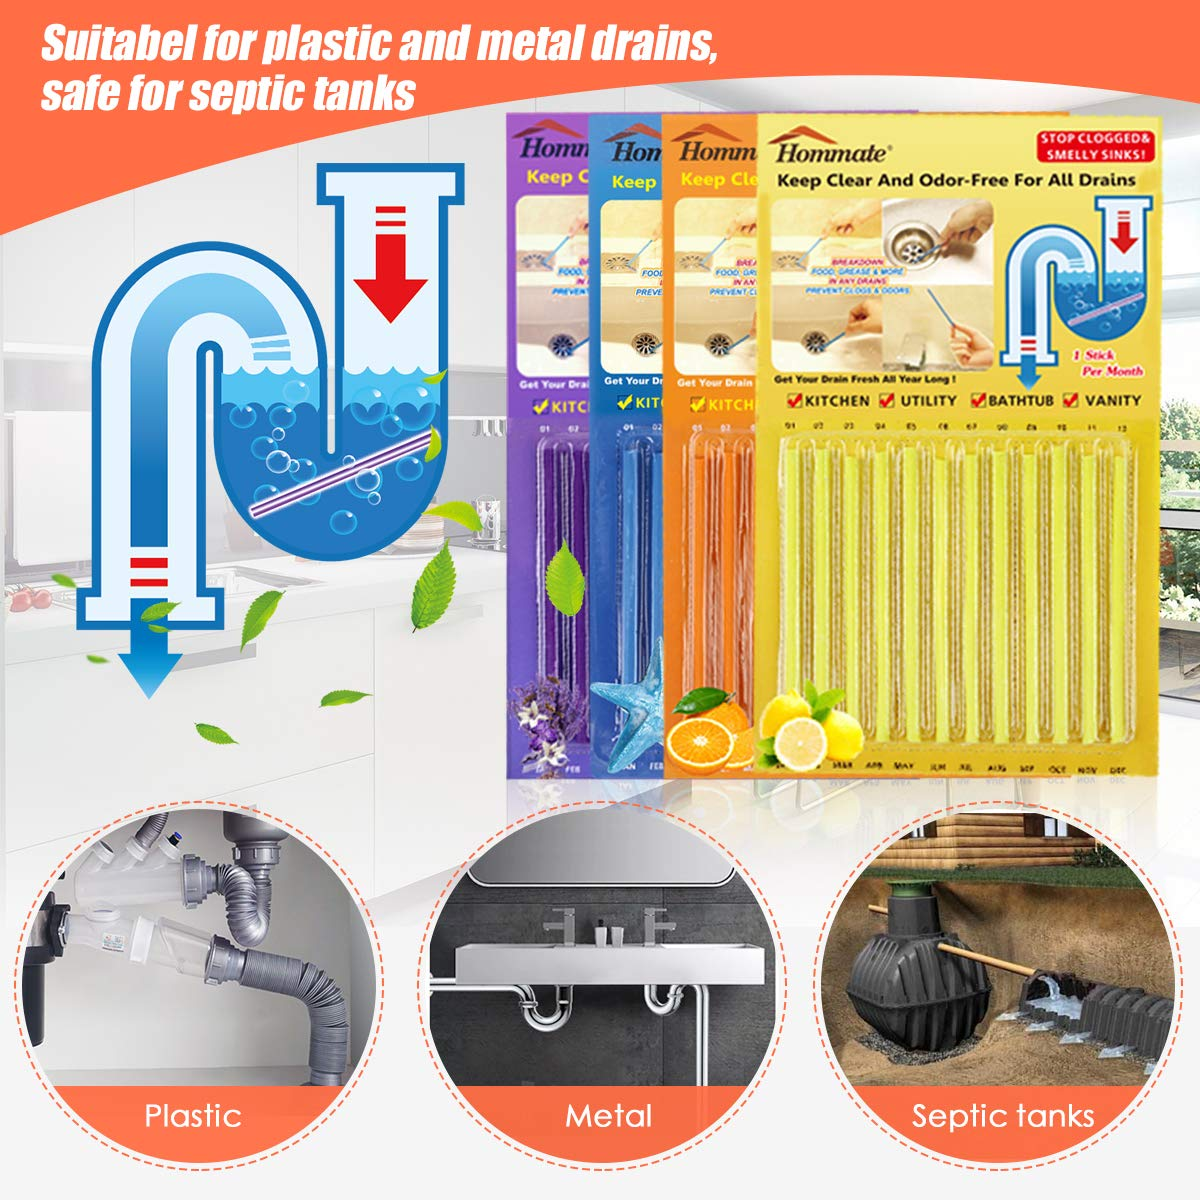 Drain Sticks Drain Stix Sink Sticks Drain Cleaner Deodorizer Sticks Drainstix for Preventing Future Clogs Eliminating Odor (Not Unclog Badly Clogged Drain) Septic Tank Safe